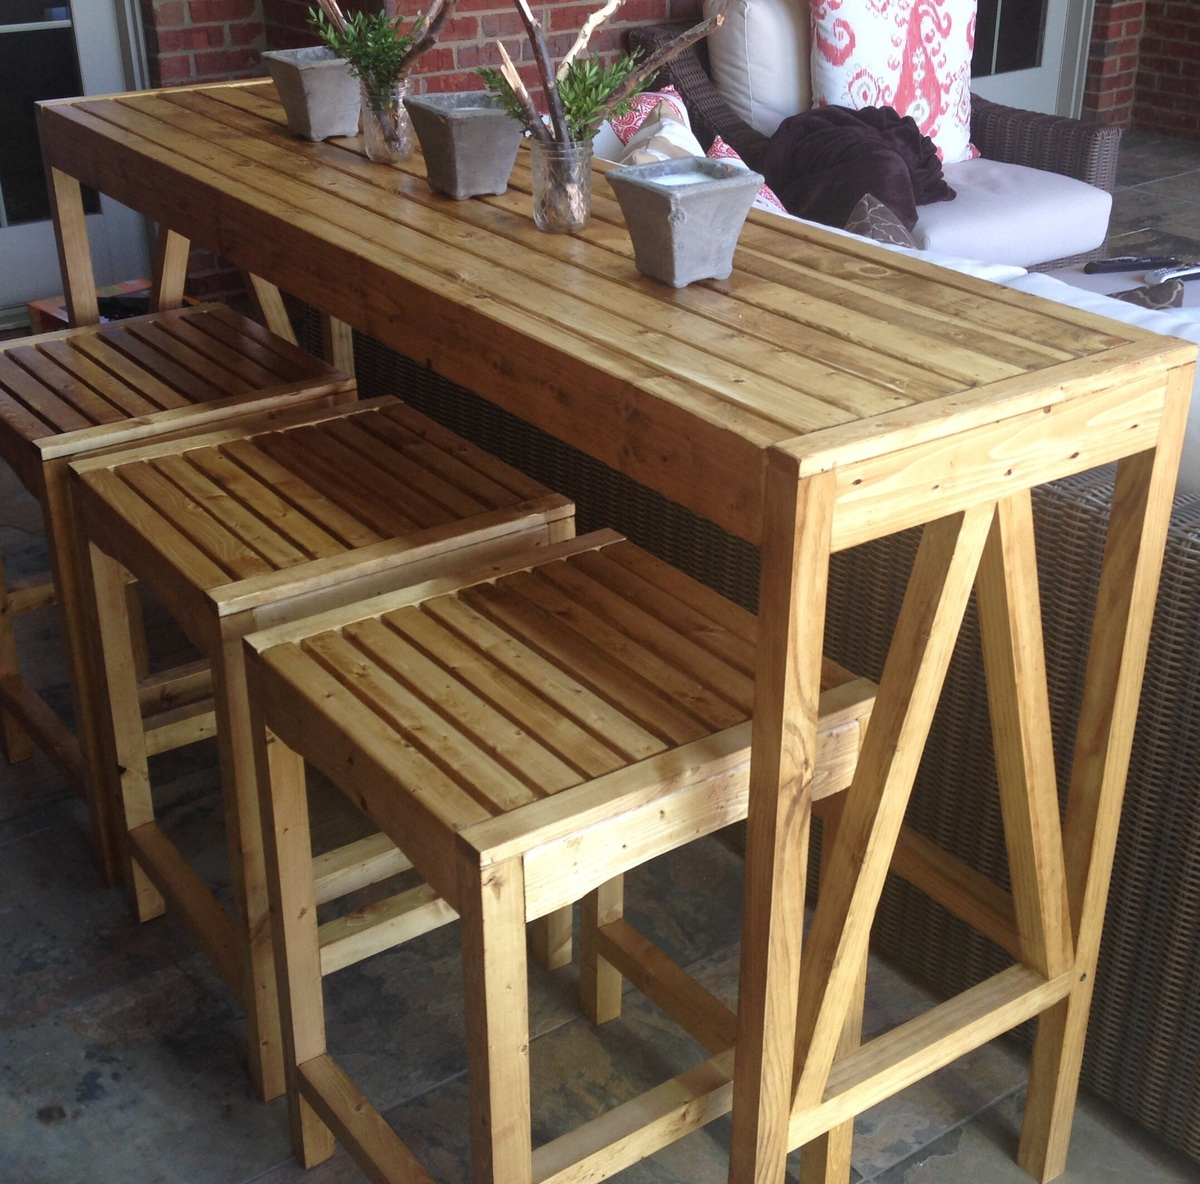 ana white  sutton custom outdoor bar stools  diy projects - an error occurred